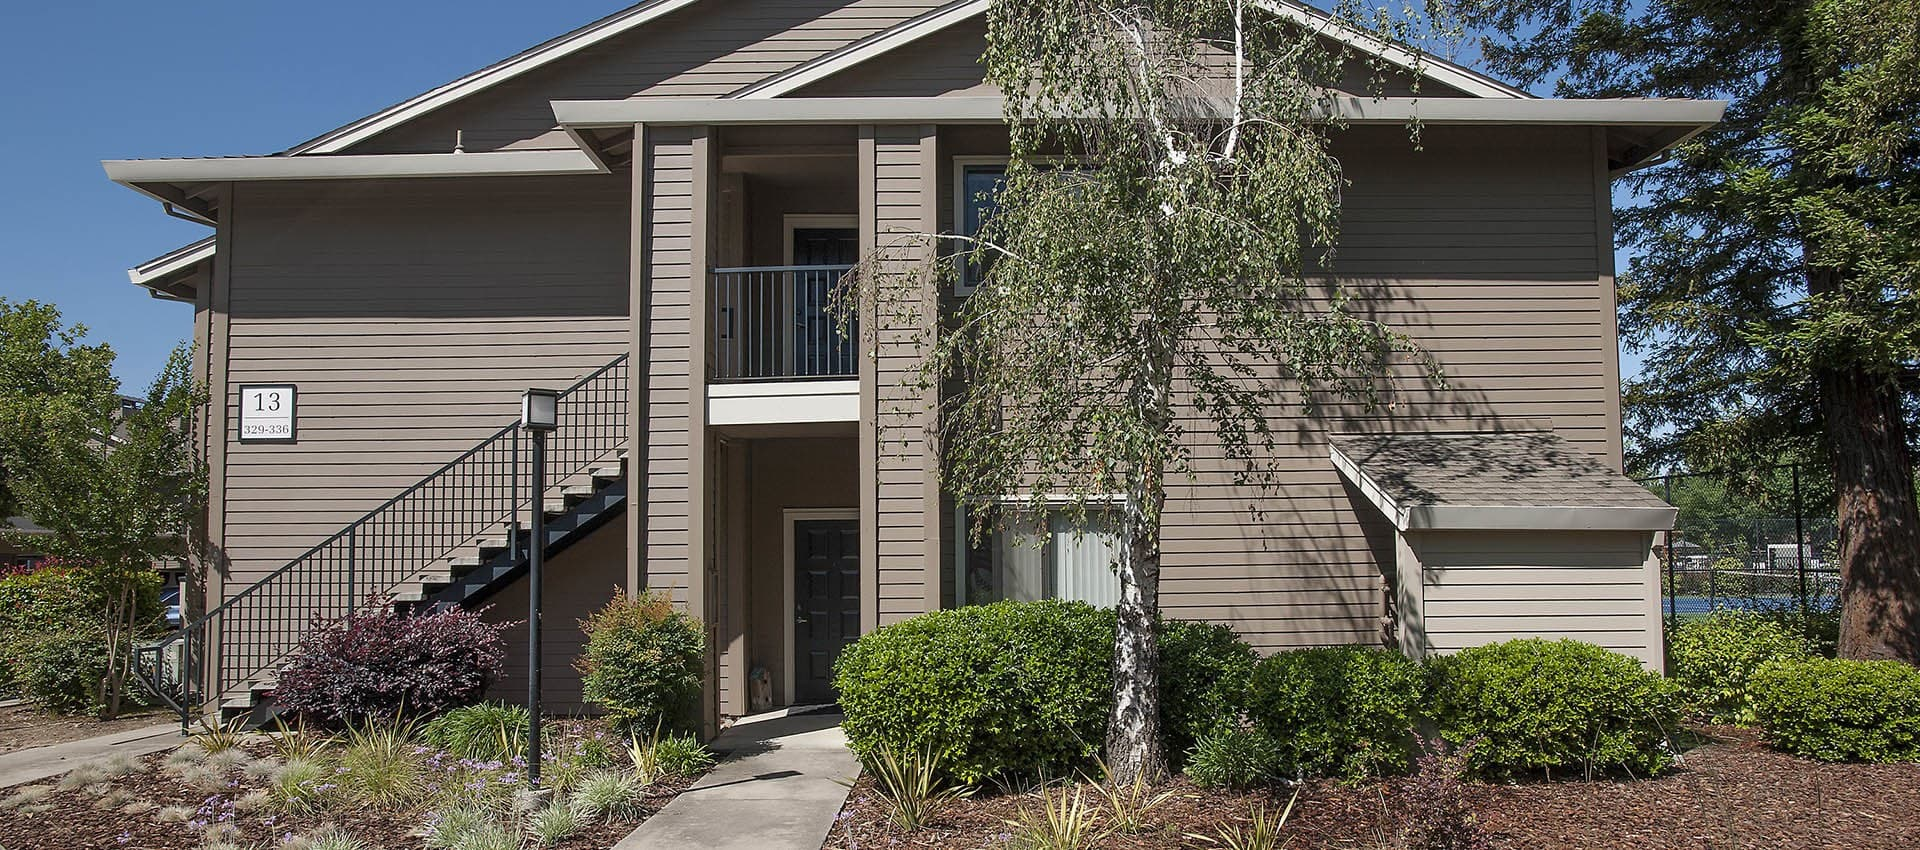 Nicely Landscaped Apartment Exterior at Deer Valley Apartment Homes in Roseville, California